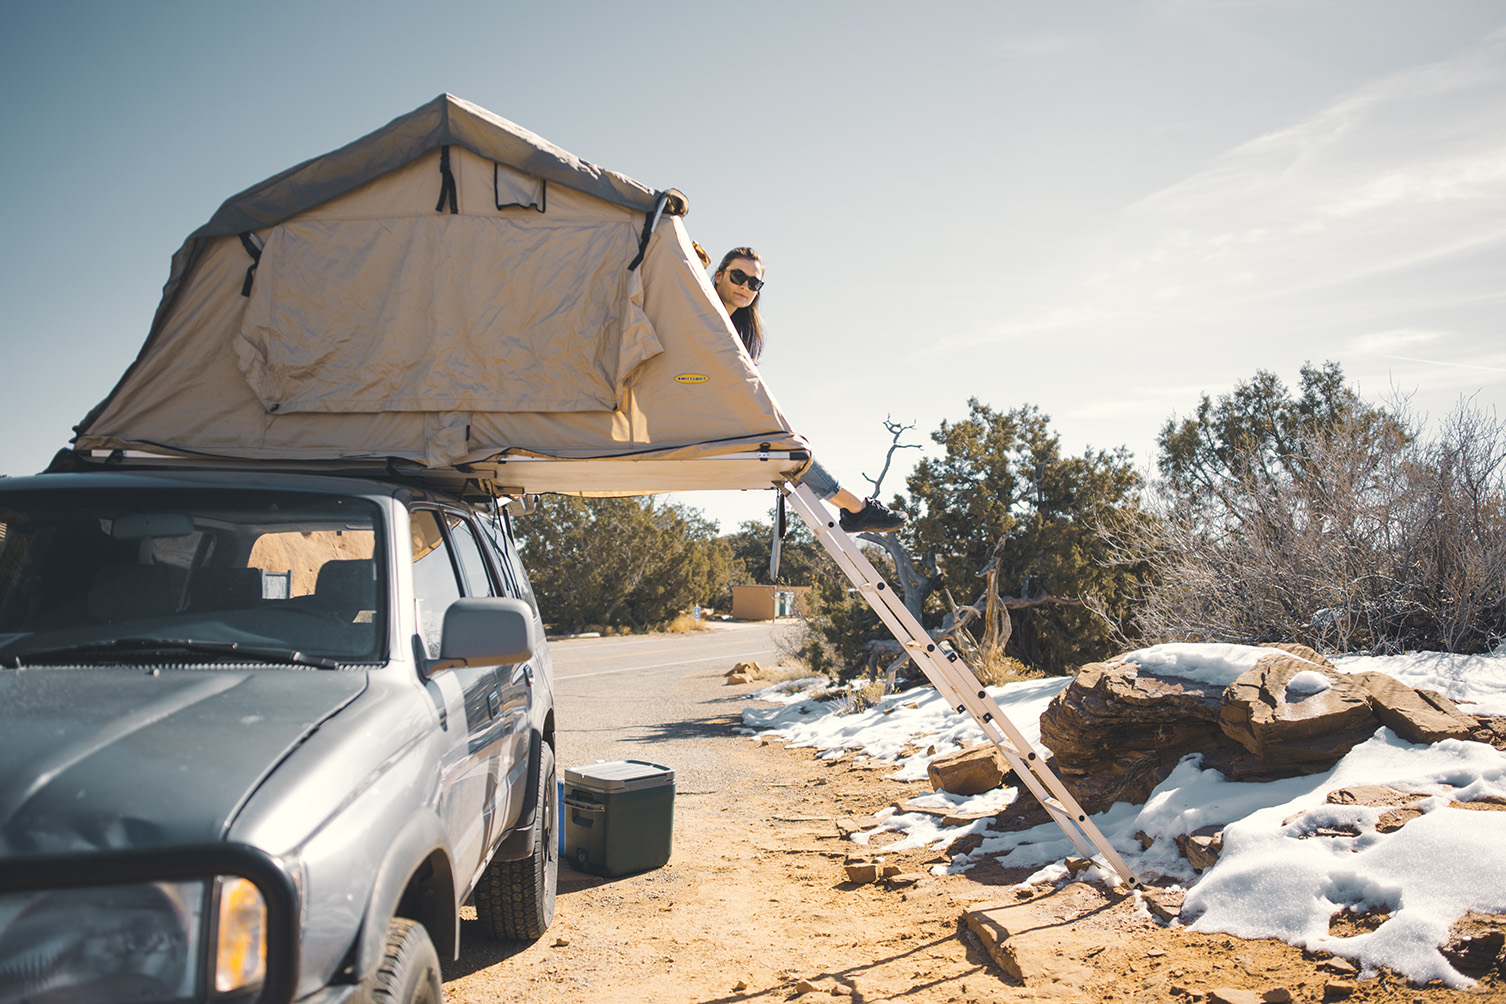 rooftop-tent-arches-national-park-4runner-toyota-sarah-hirning-stanley-cooler.jpg